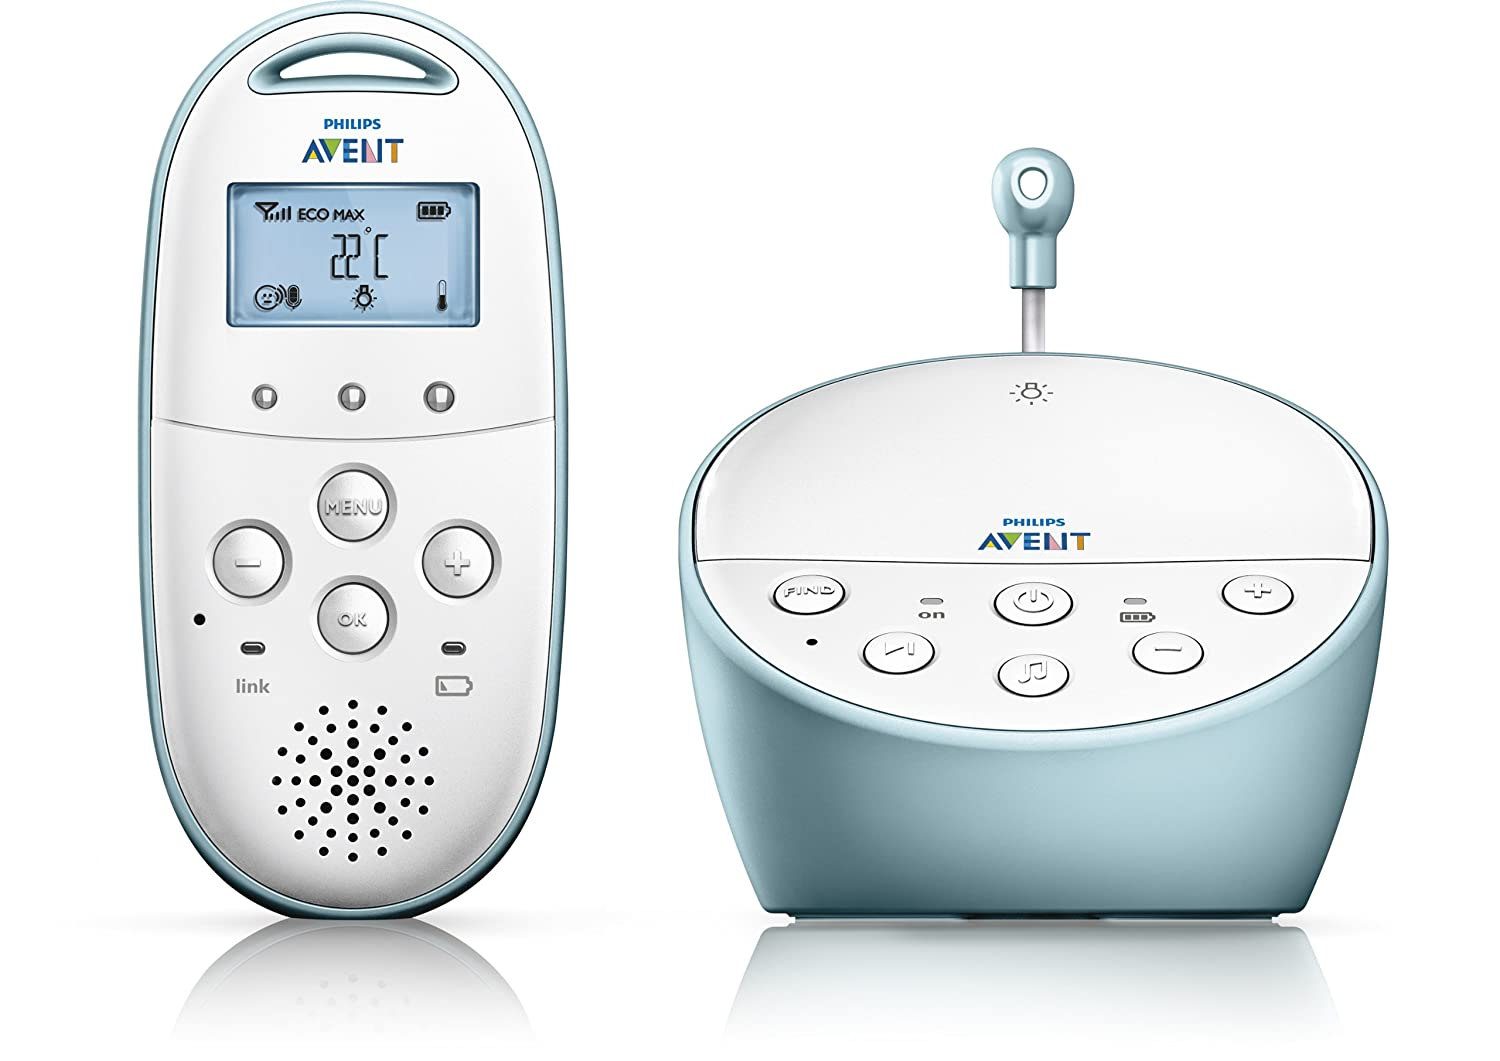 Philips Avent Dect Audio Baby Monitor SCD560 10 Discontinued by Manufacturer